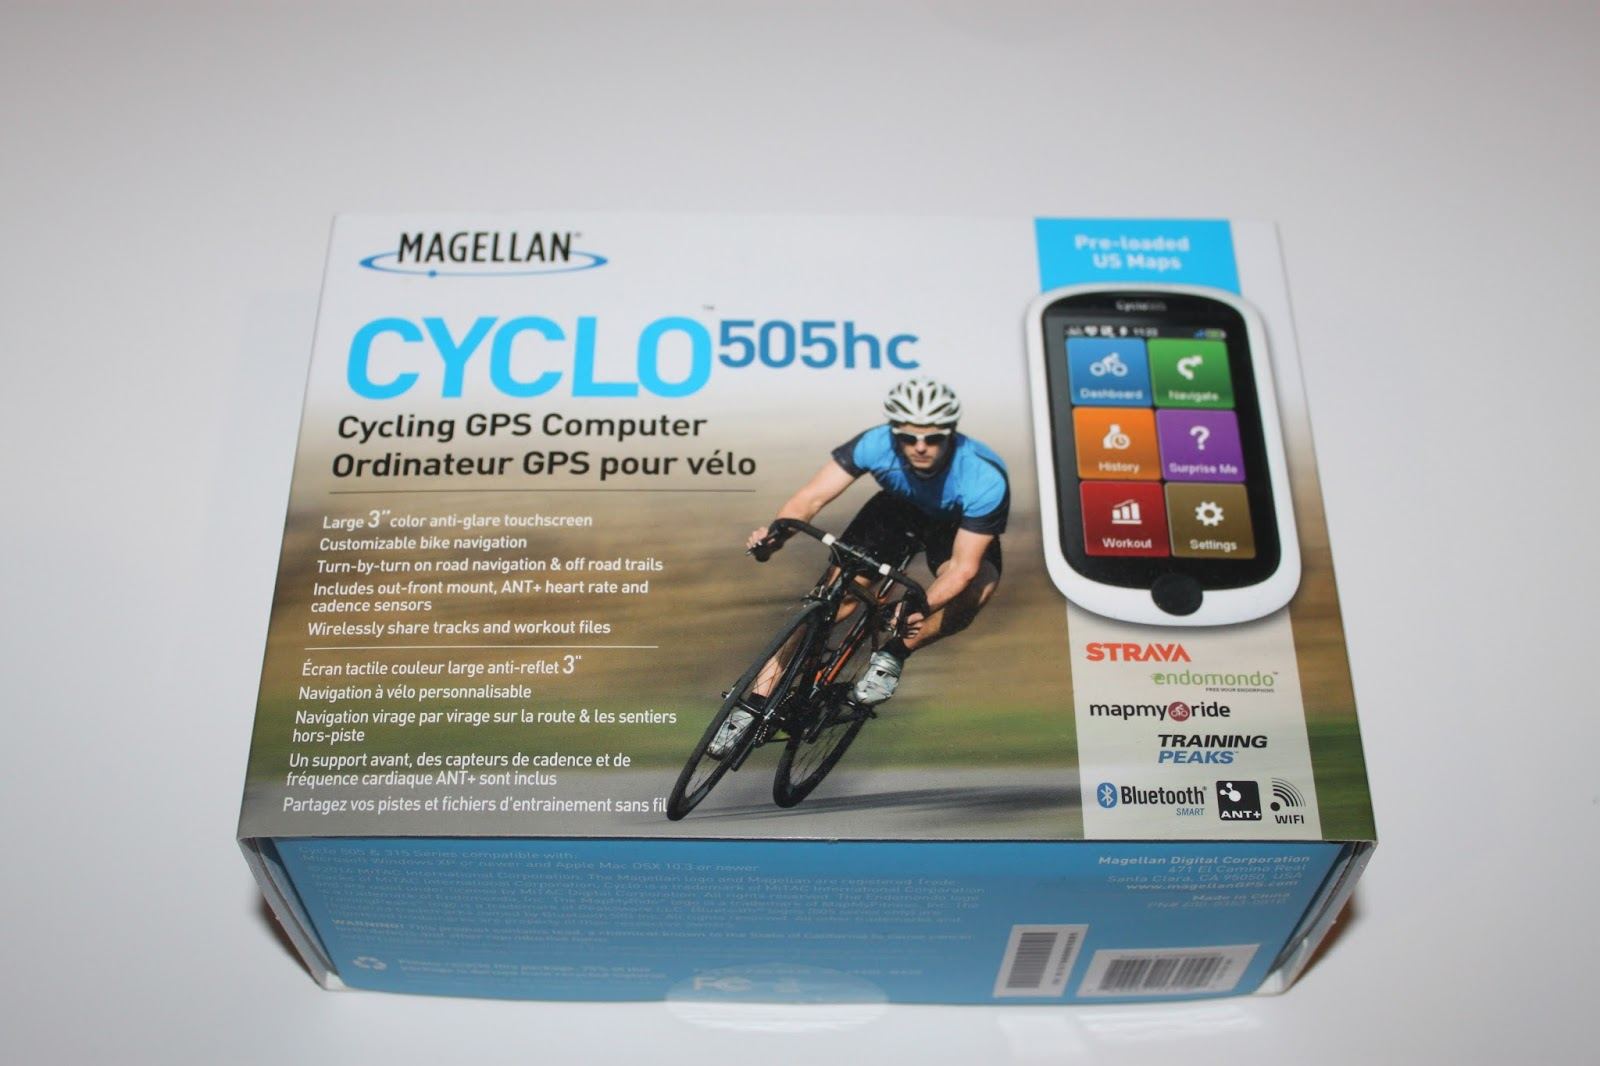 Stereowise Plus: Magellan Cyclo 505HC GPS Bicycle Computer Review